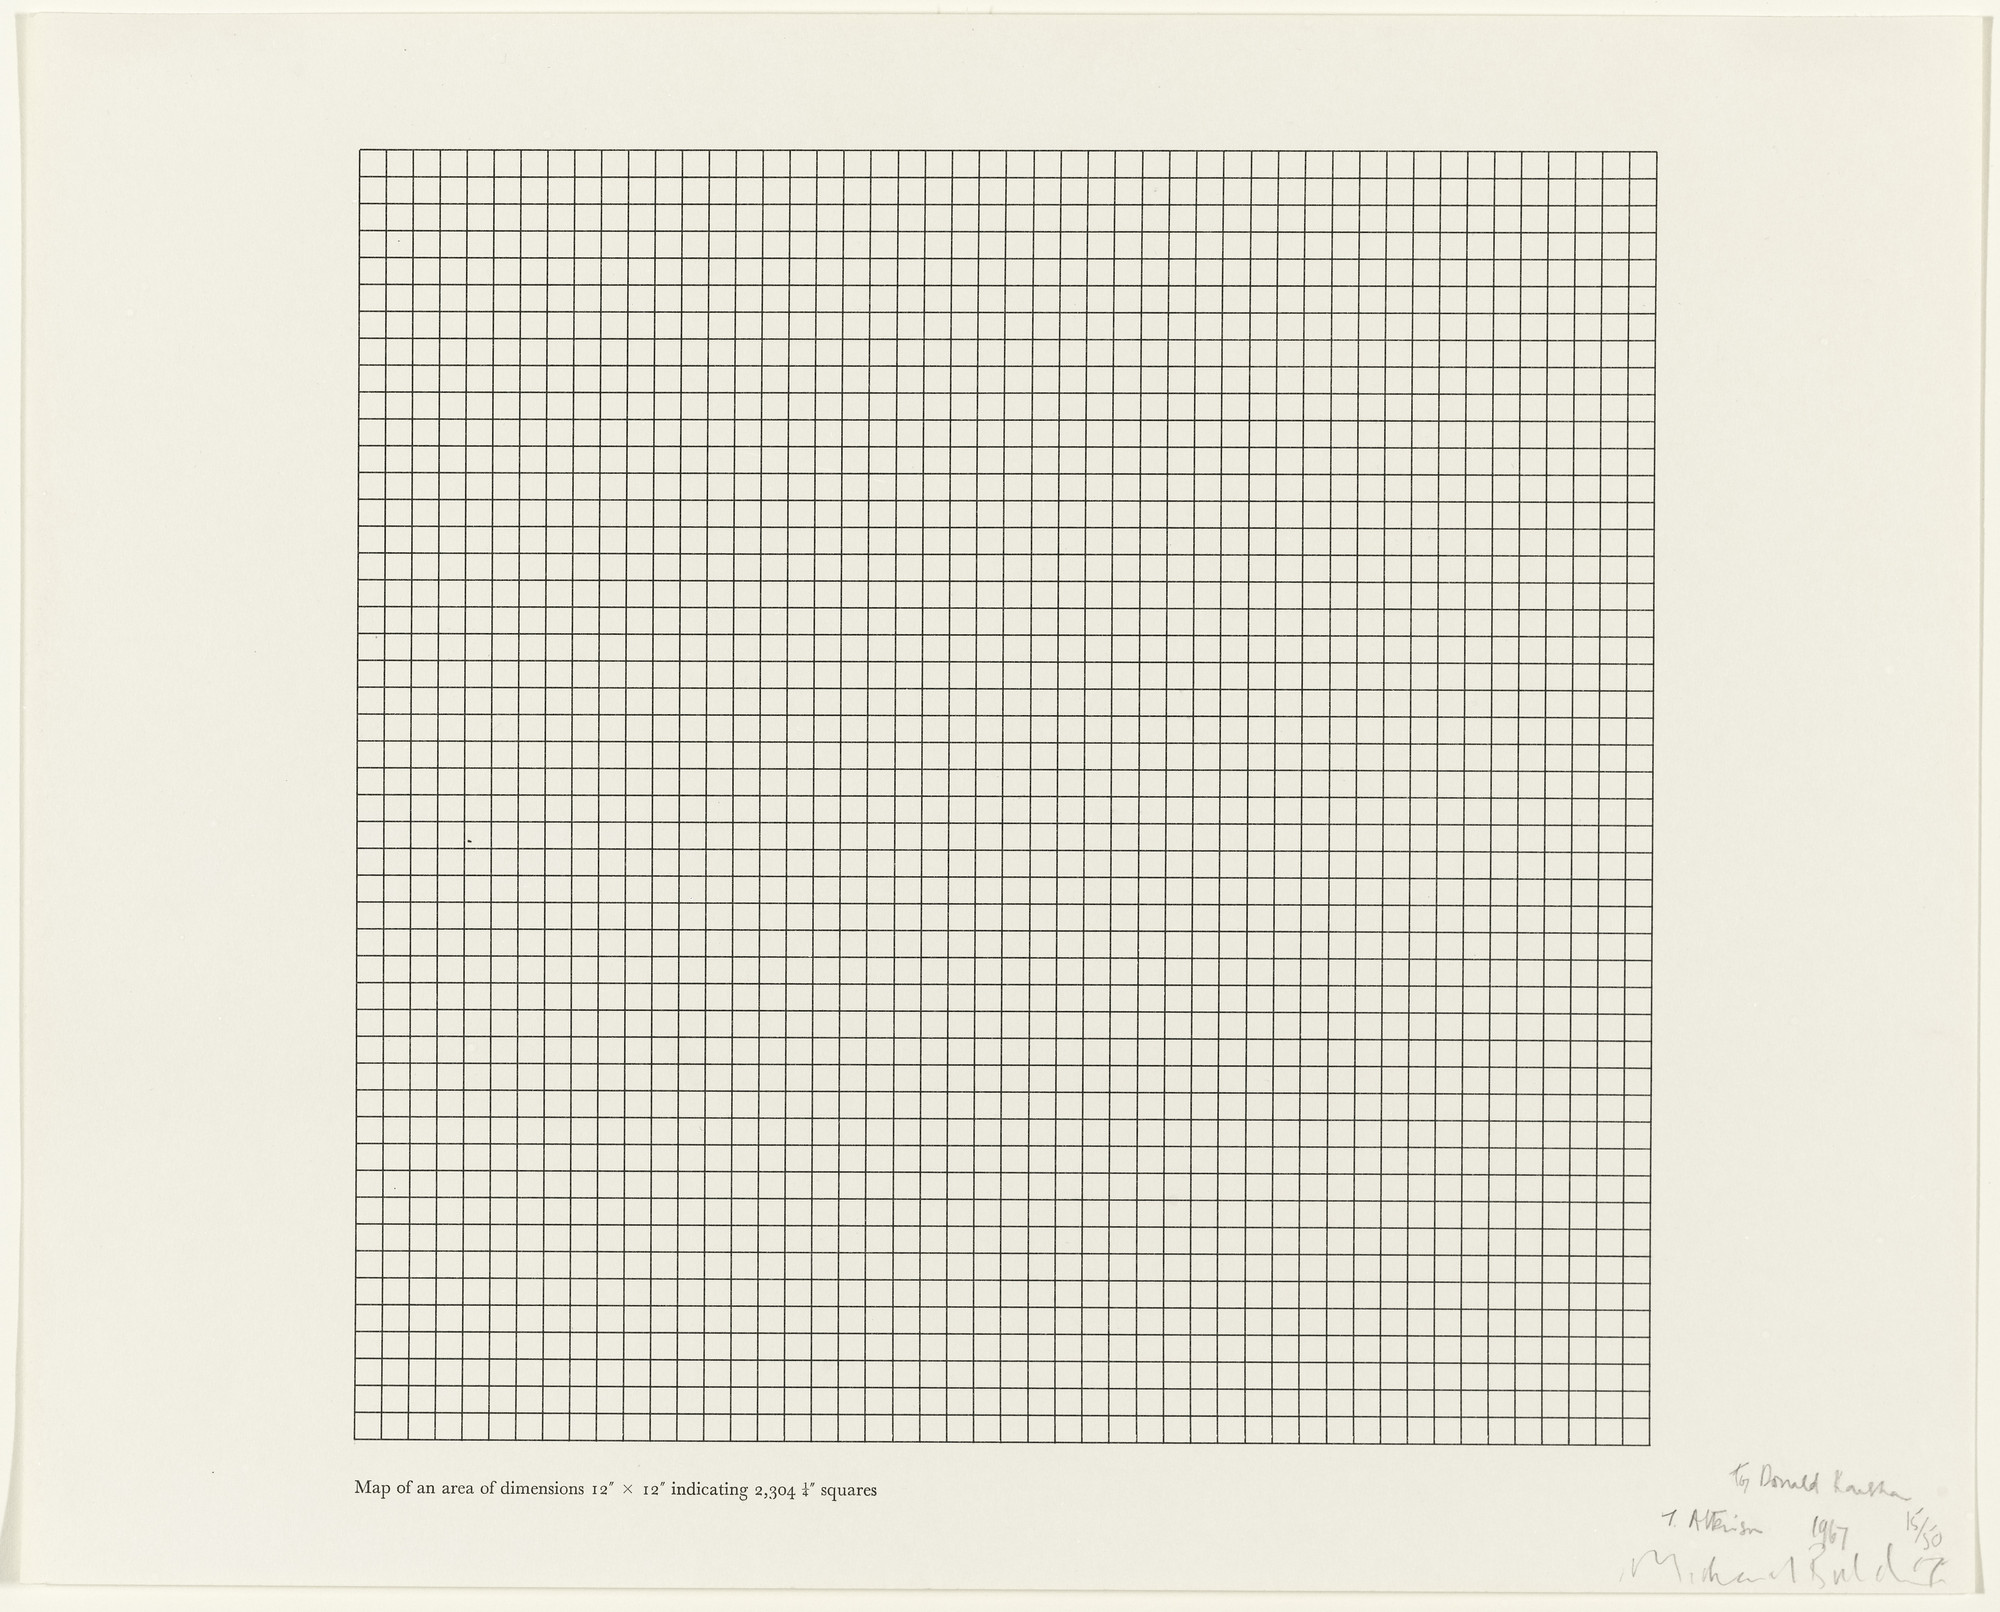 "Terry Atkinson, Michael Baldwin. Map of an Area of Dimensions 12"" x 12"" Indicating 2,304 1/4"" Squares. 1967"